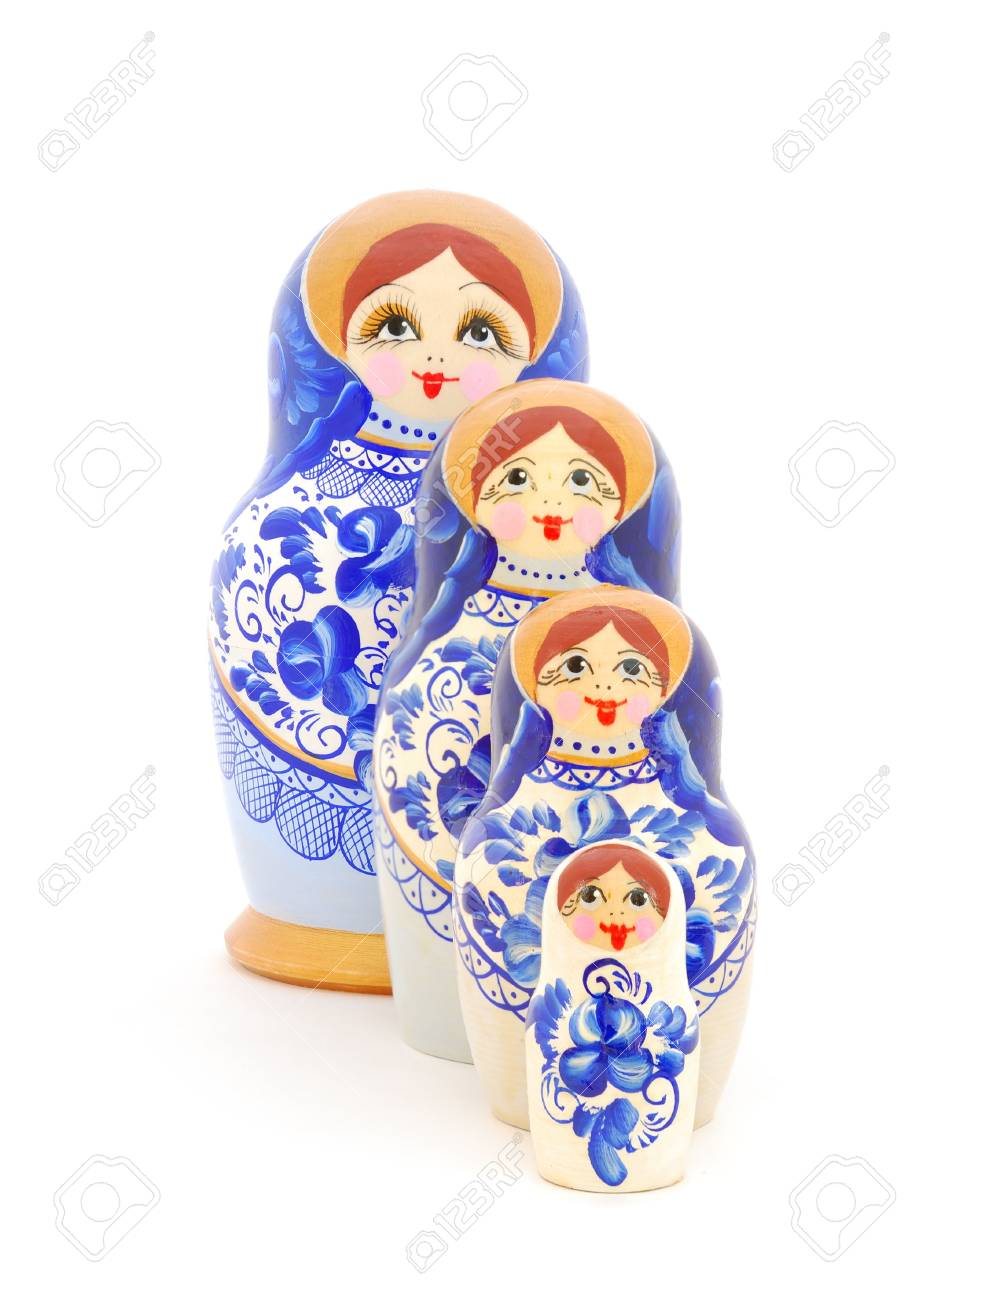 Russian nesting dolls on white background. Stock Photo - 7151032